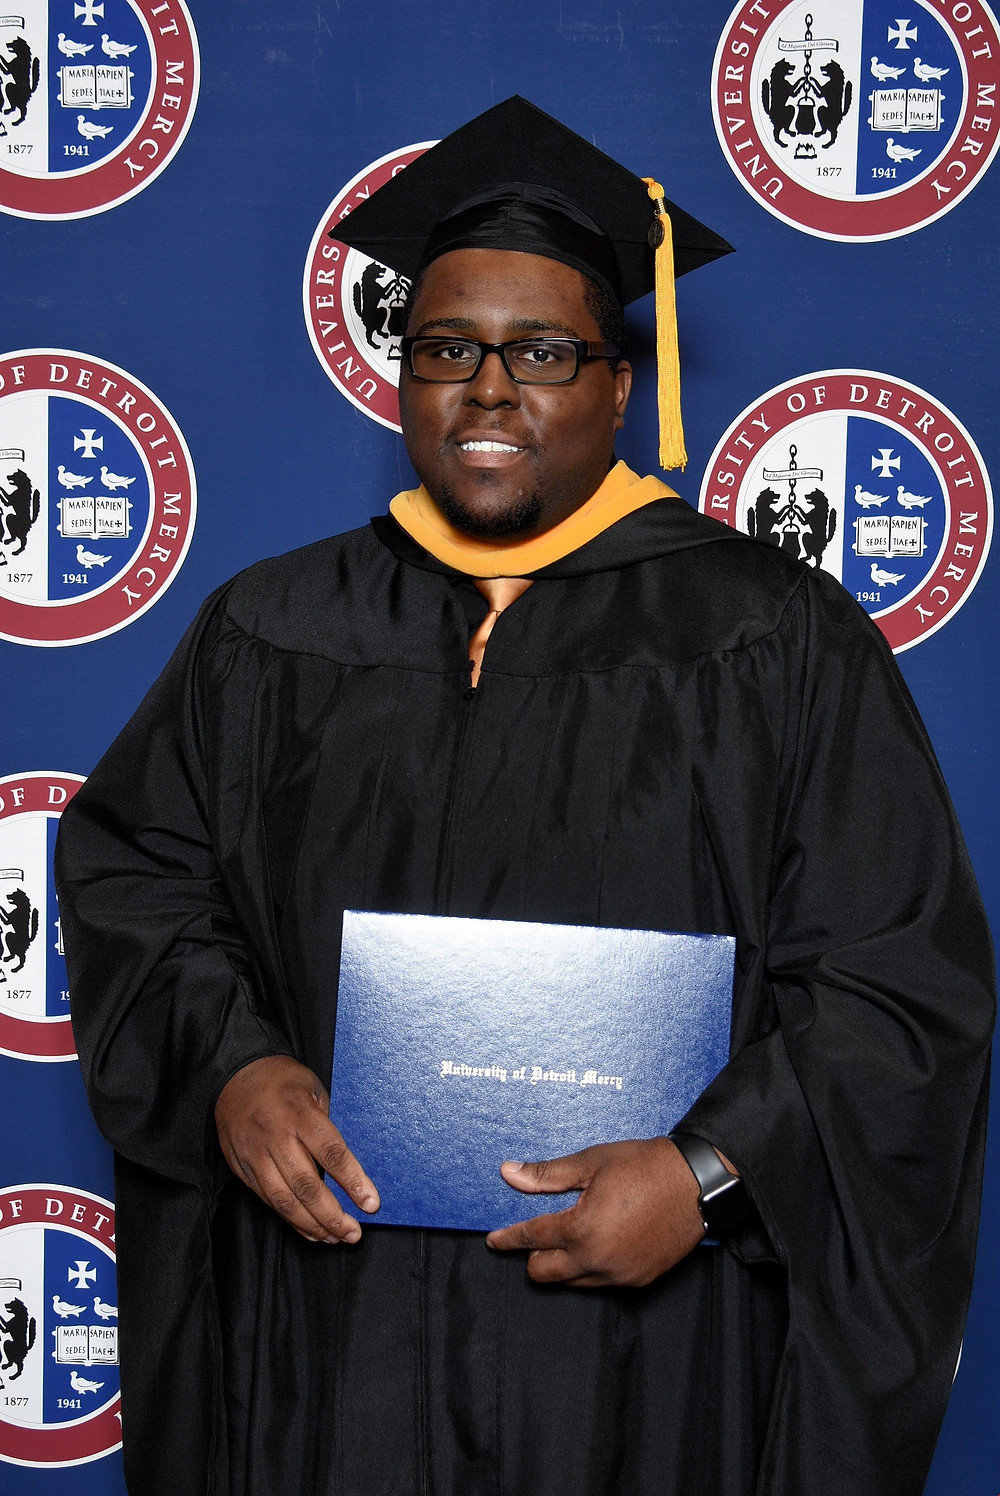 Mr. Ellison graduated with his Master's from The University of Detroit Mercy in 2018